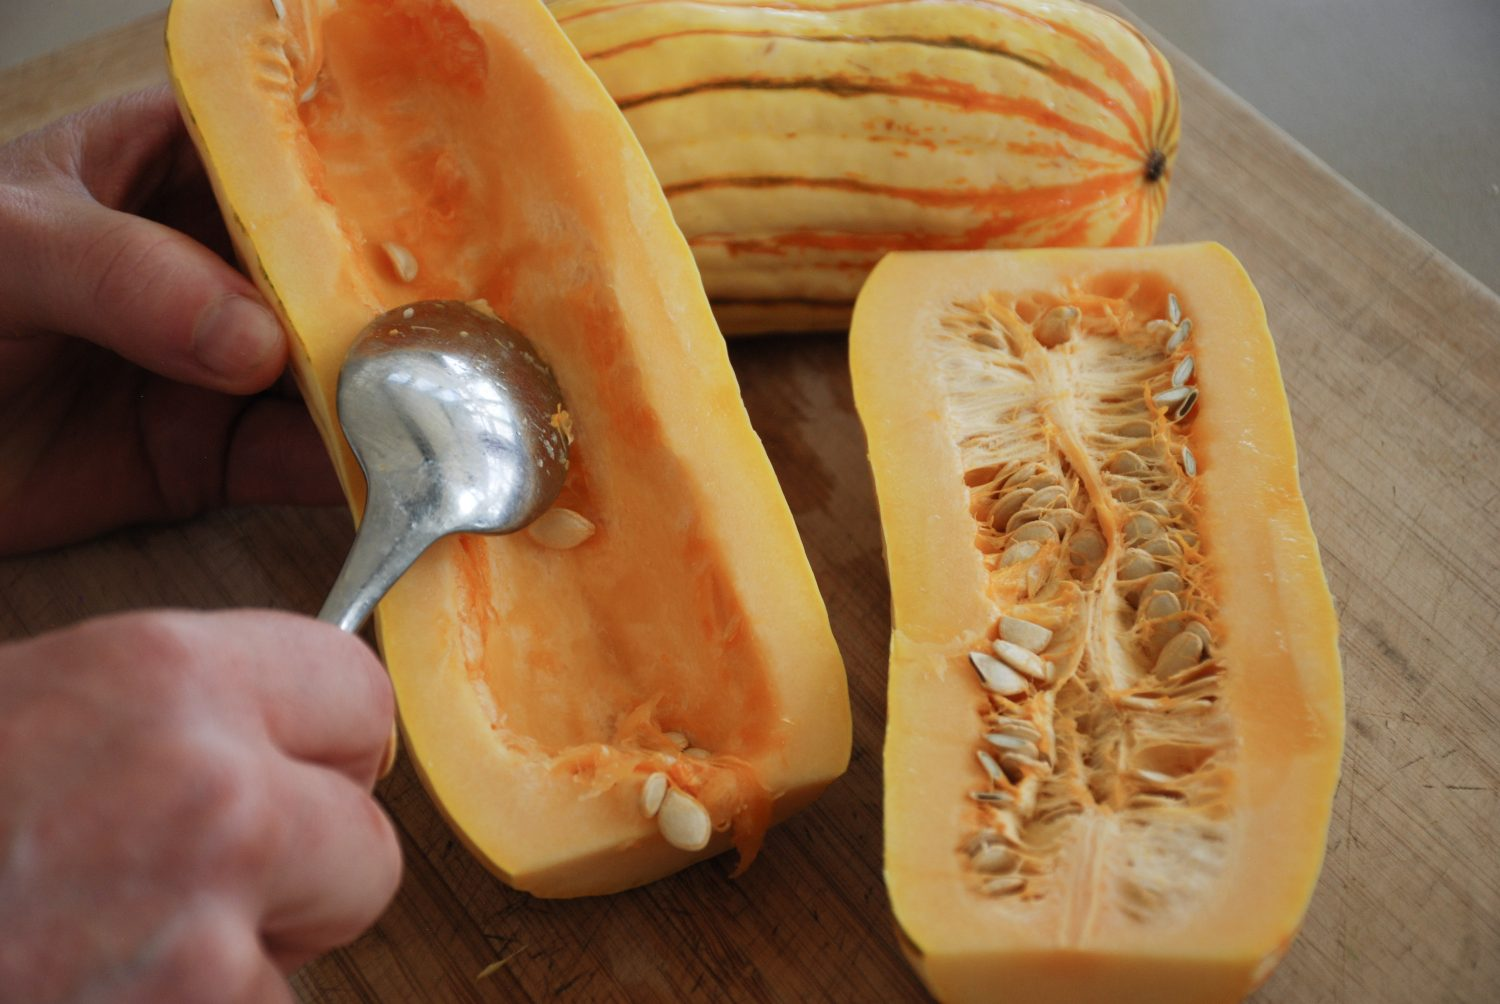 Seeding the Delicata Squash